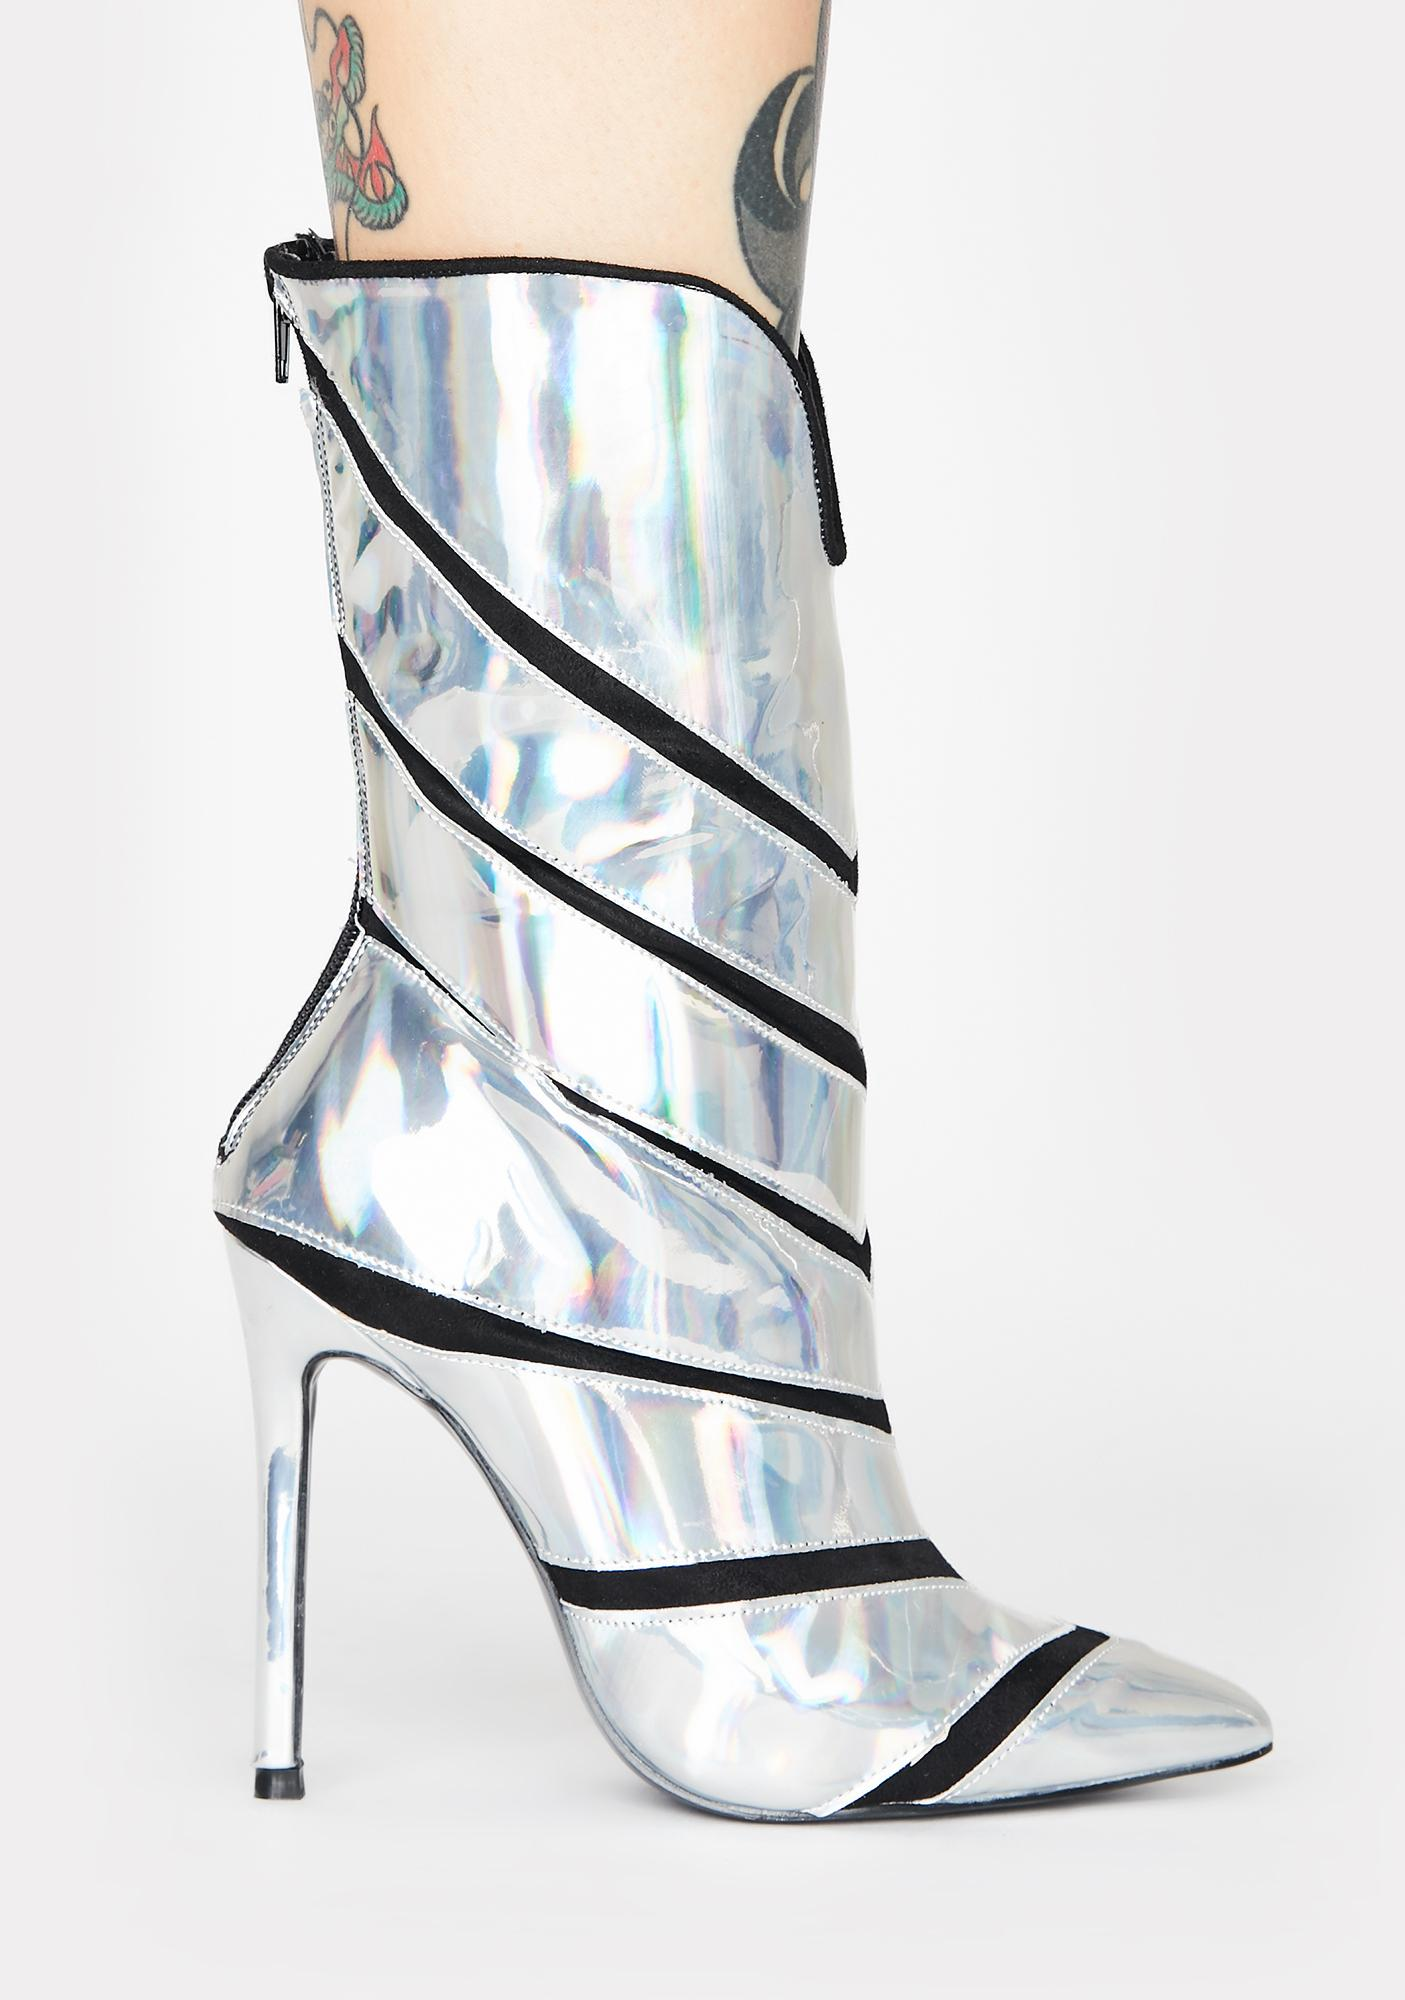 Lemon Drop by Privileged Plushin Holographic Heeled Boots